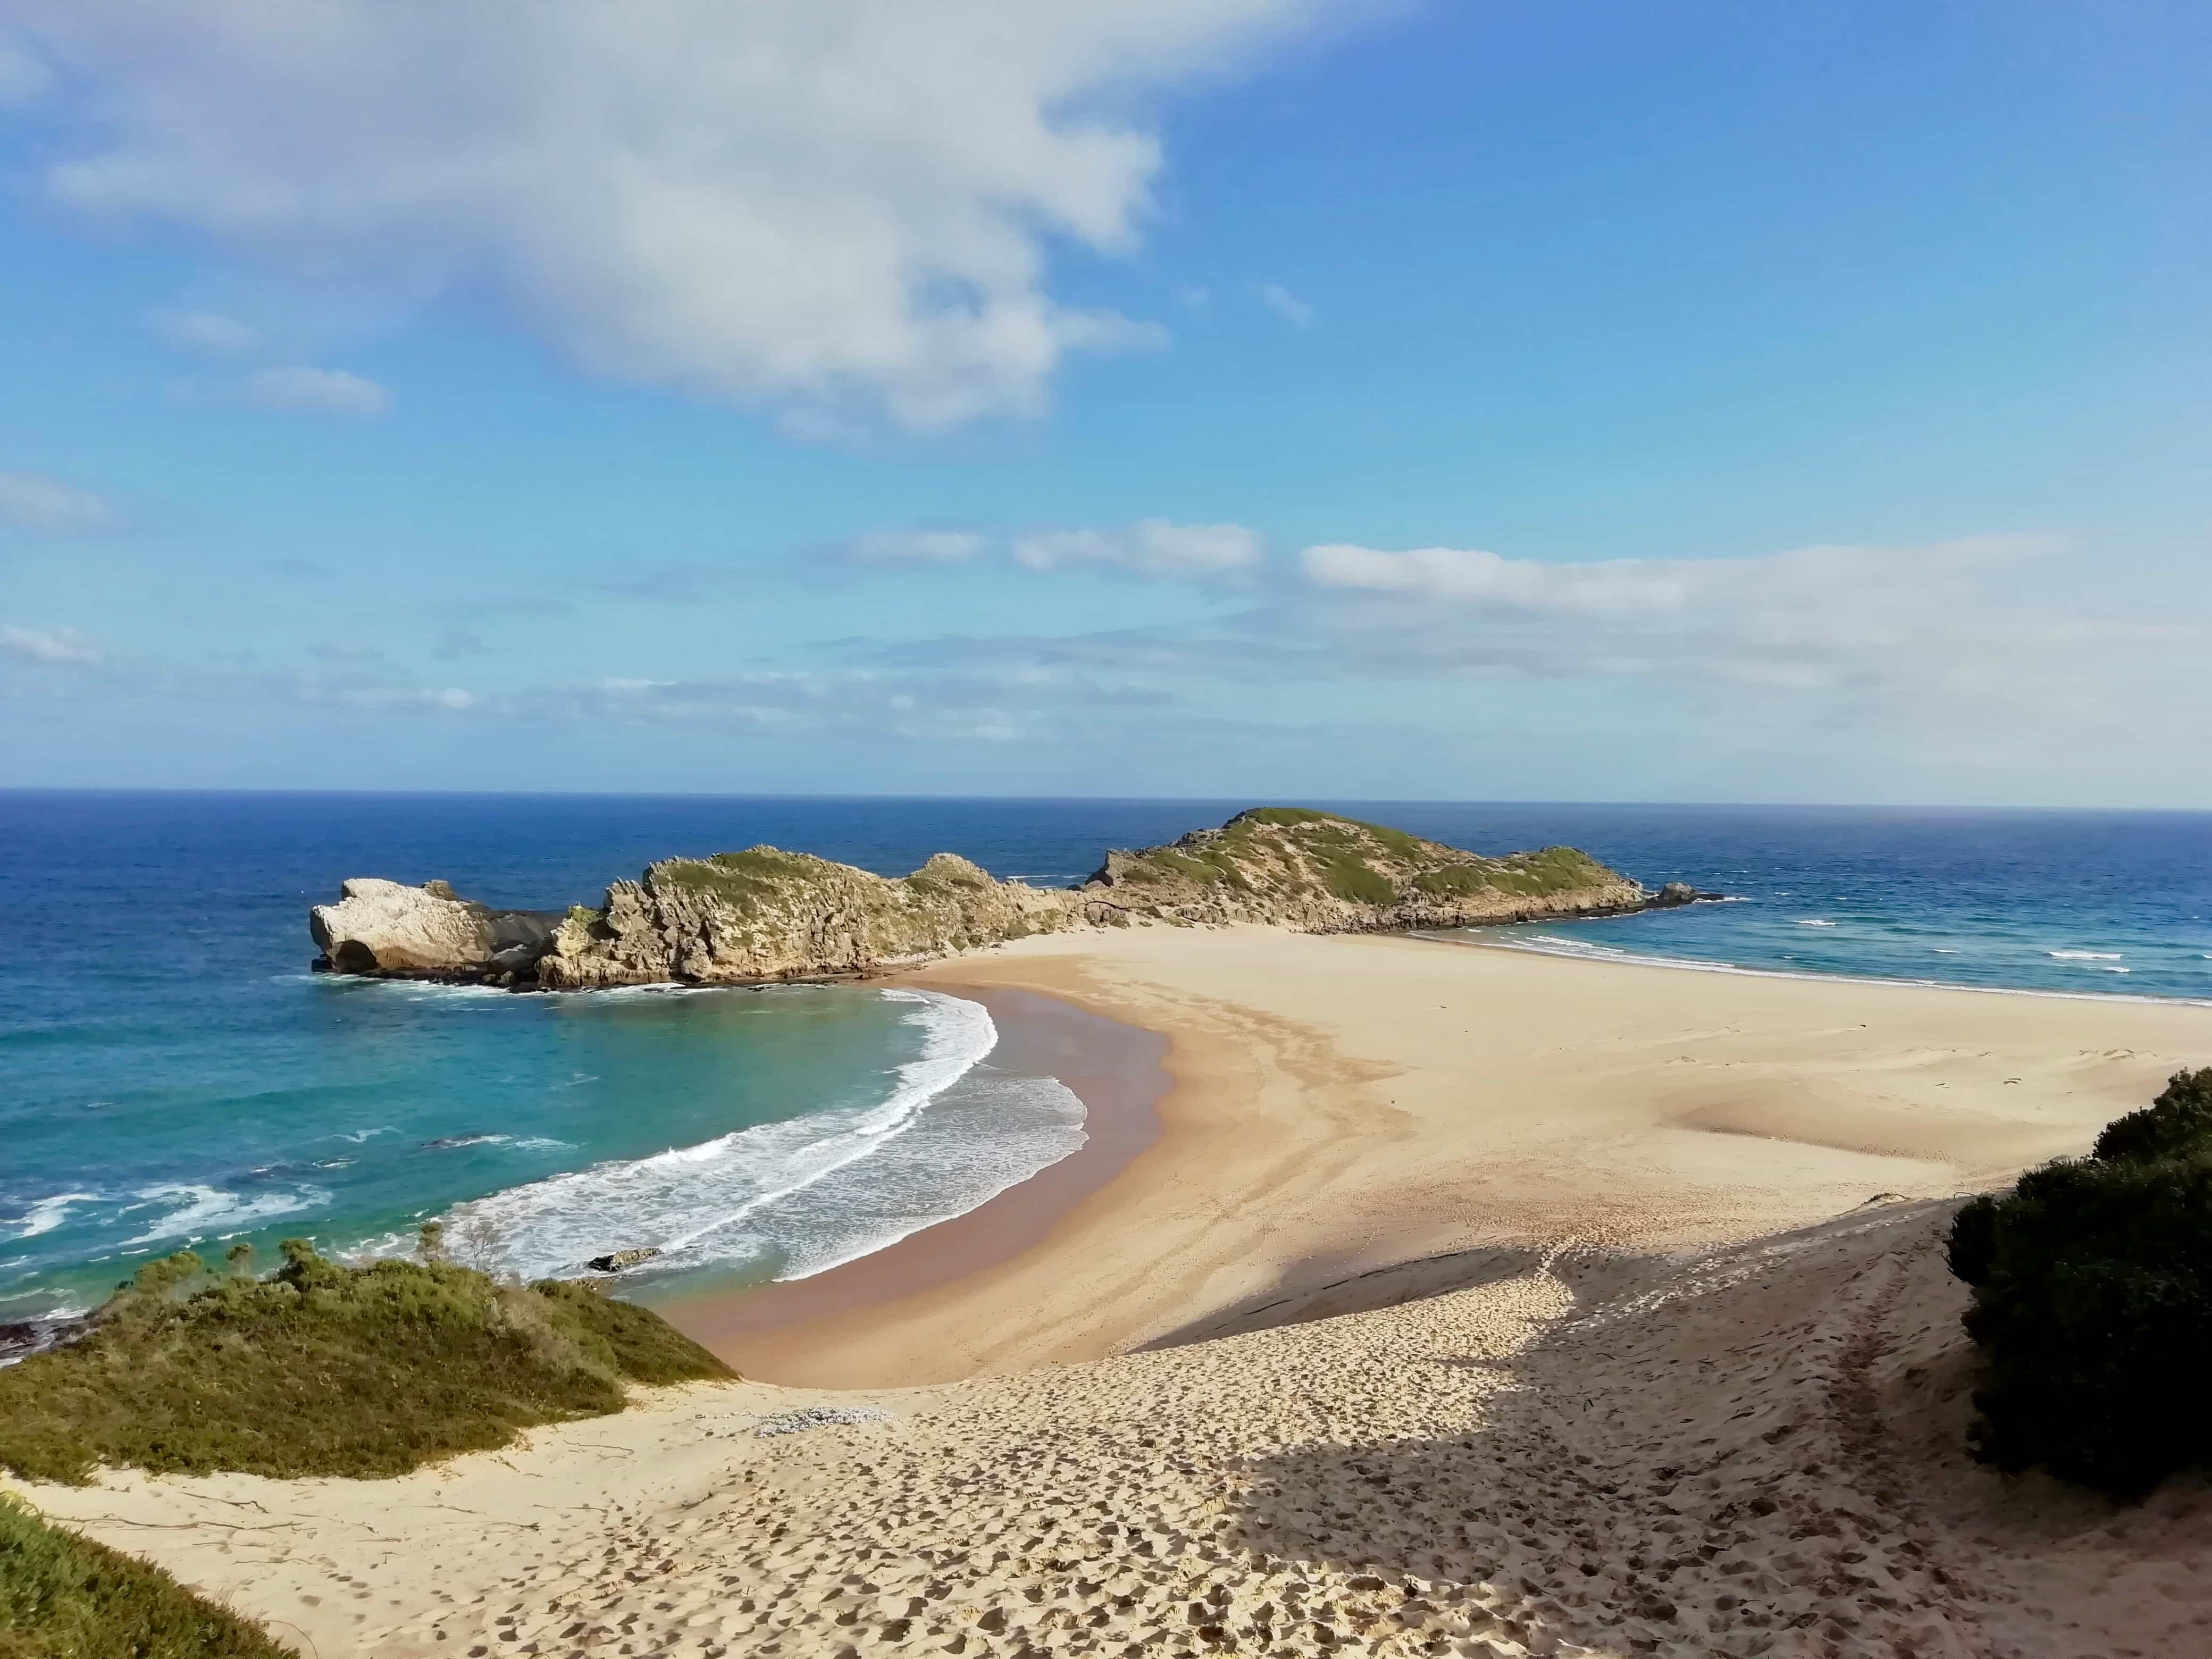 Robberg Nature Reserve beach and seagull nesting ground